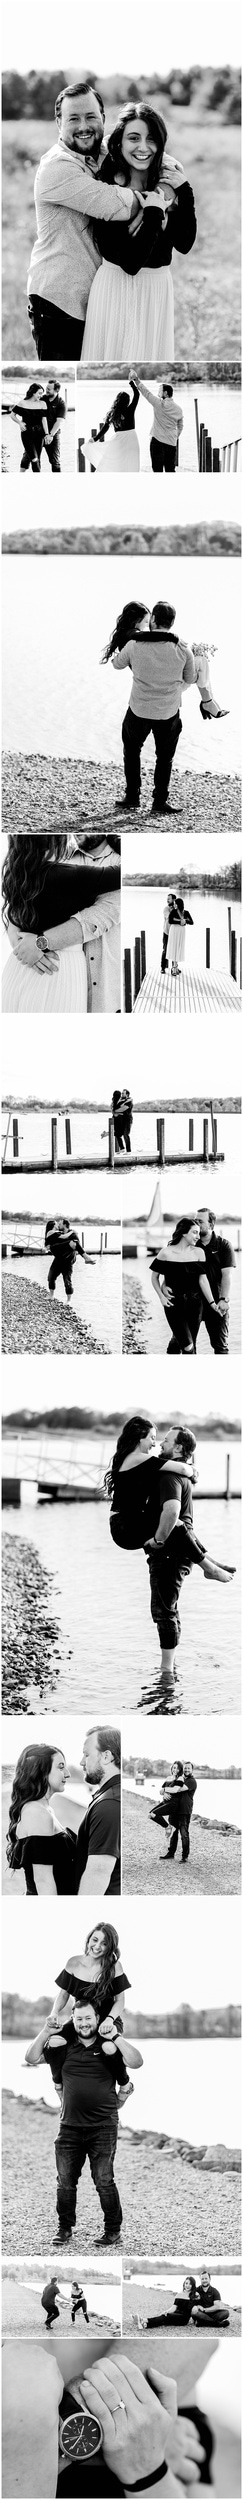 Lakeside Engagement Session at Montour Preserve